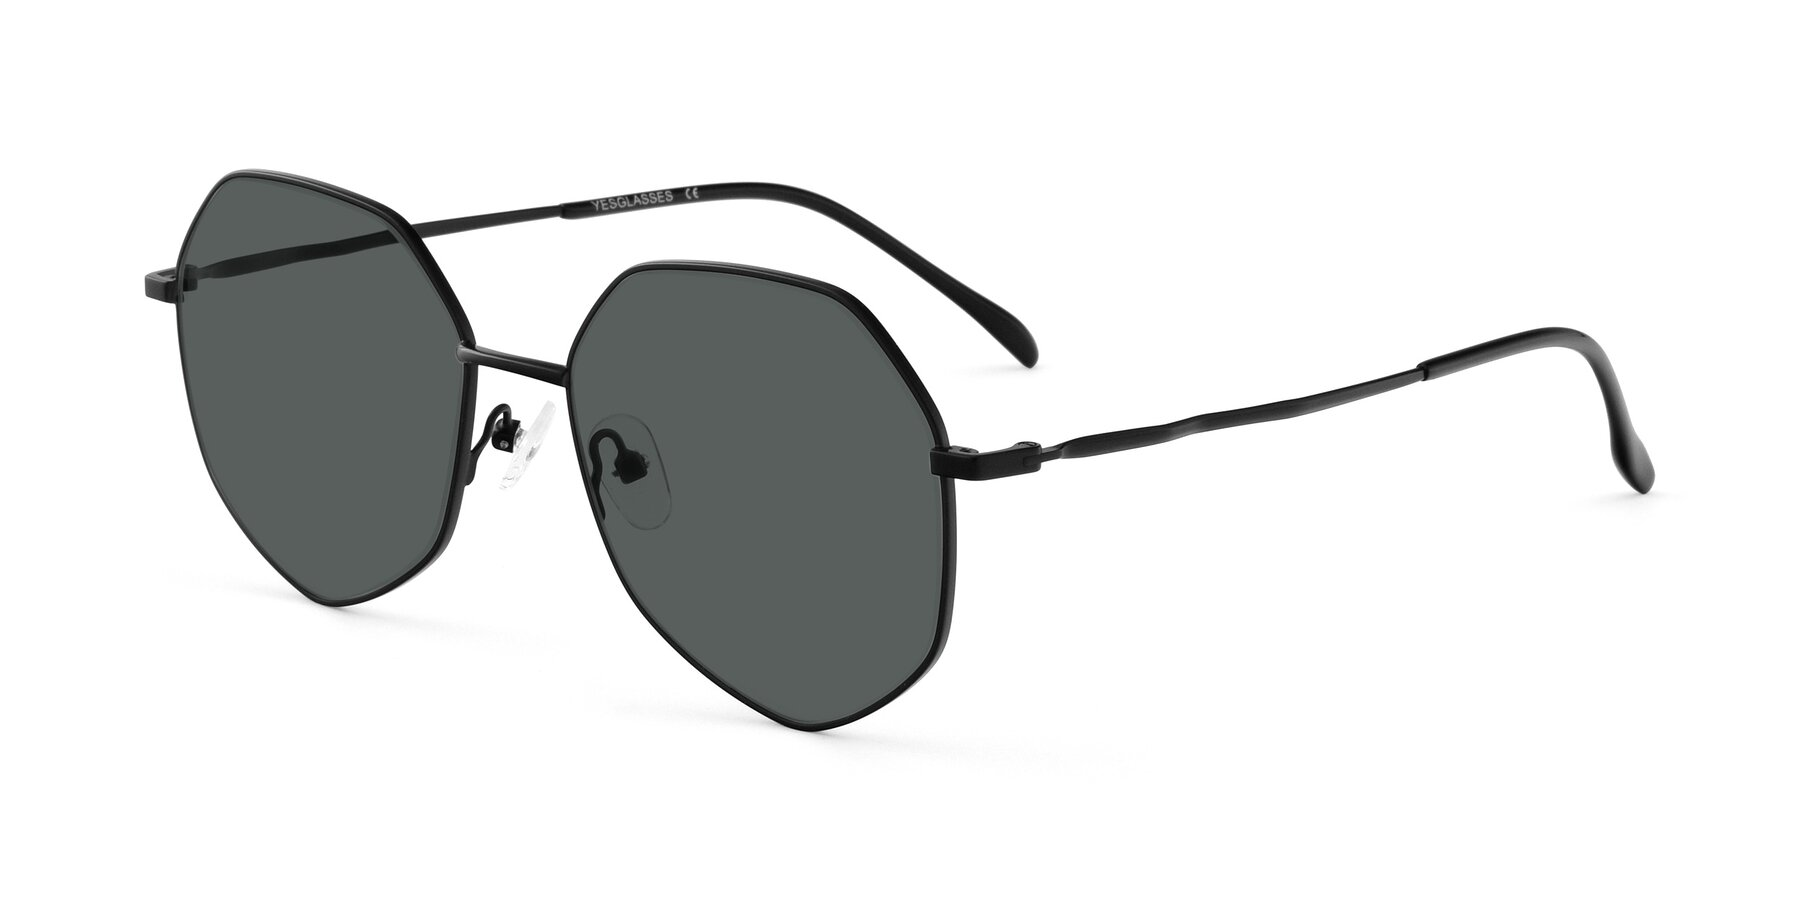 Angle of Sunshine in Black with Gray Polarized Lenses